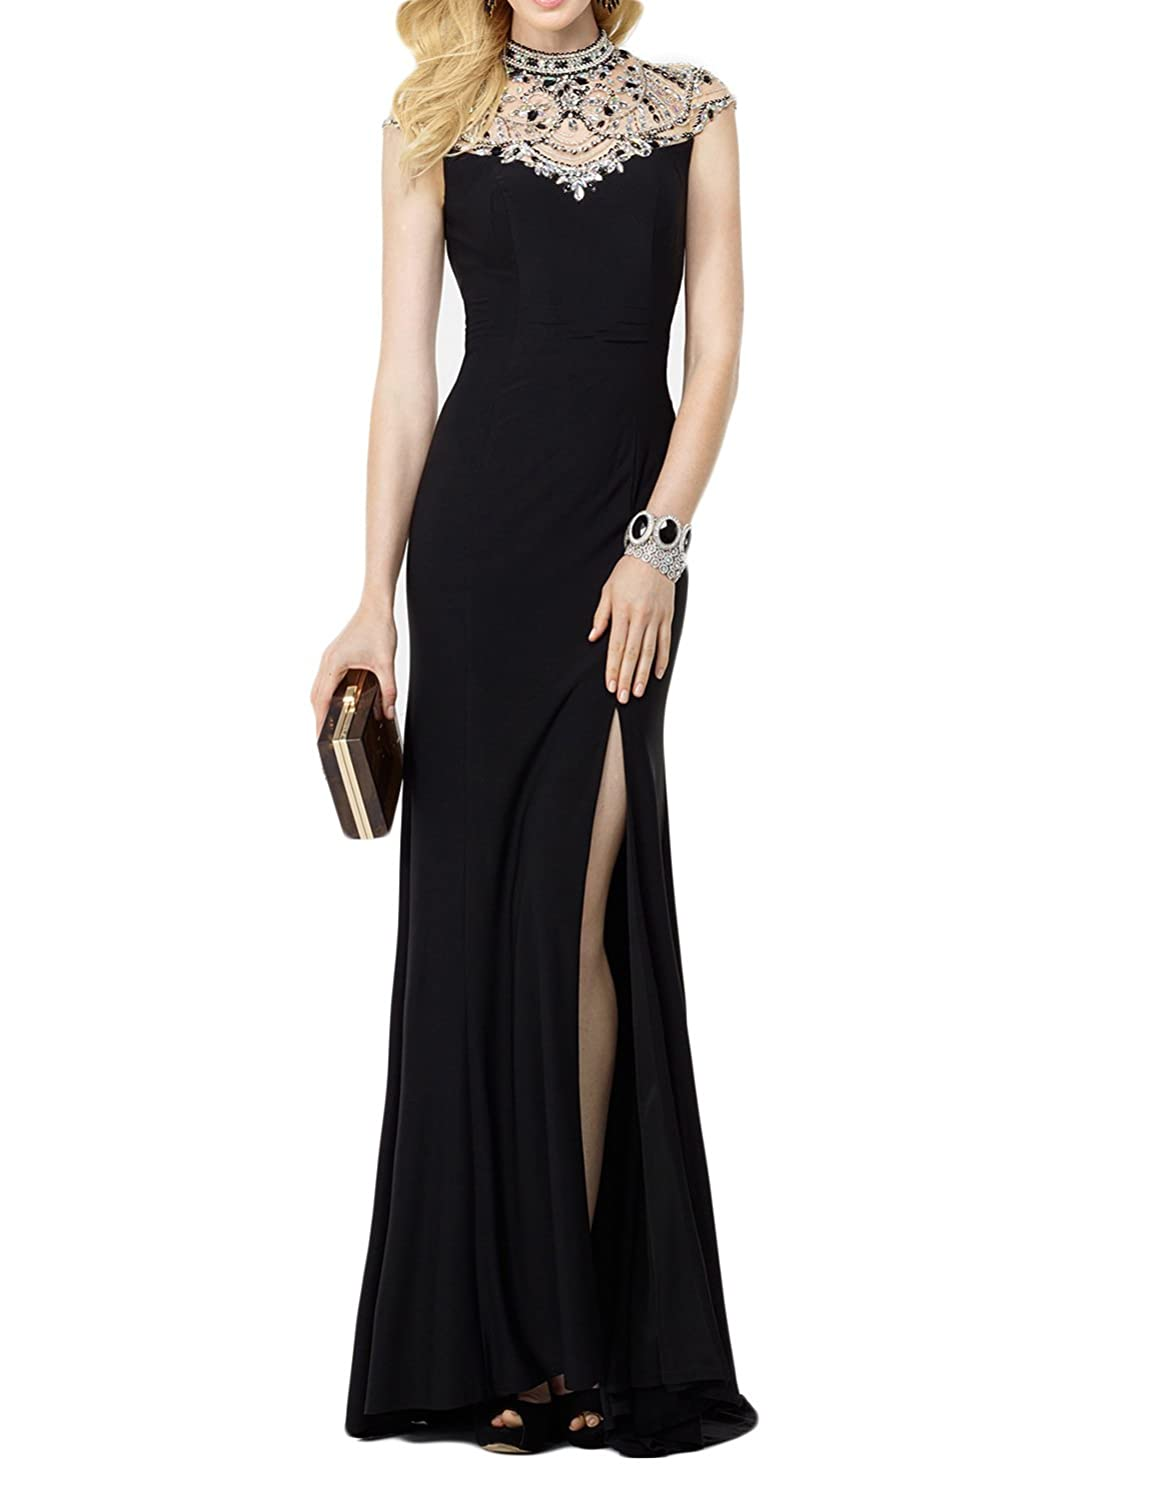 Muisal Women's High Neck Open Back Beading Long Evening Party Dresses with High Side Split N-EV10